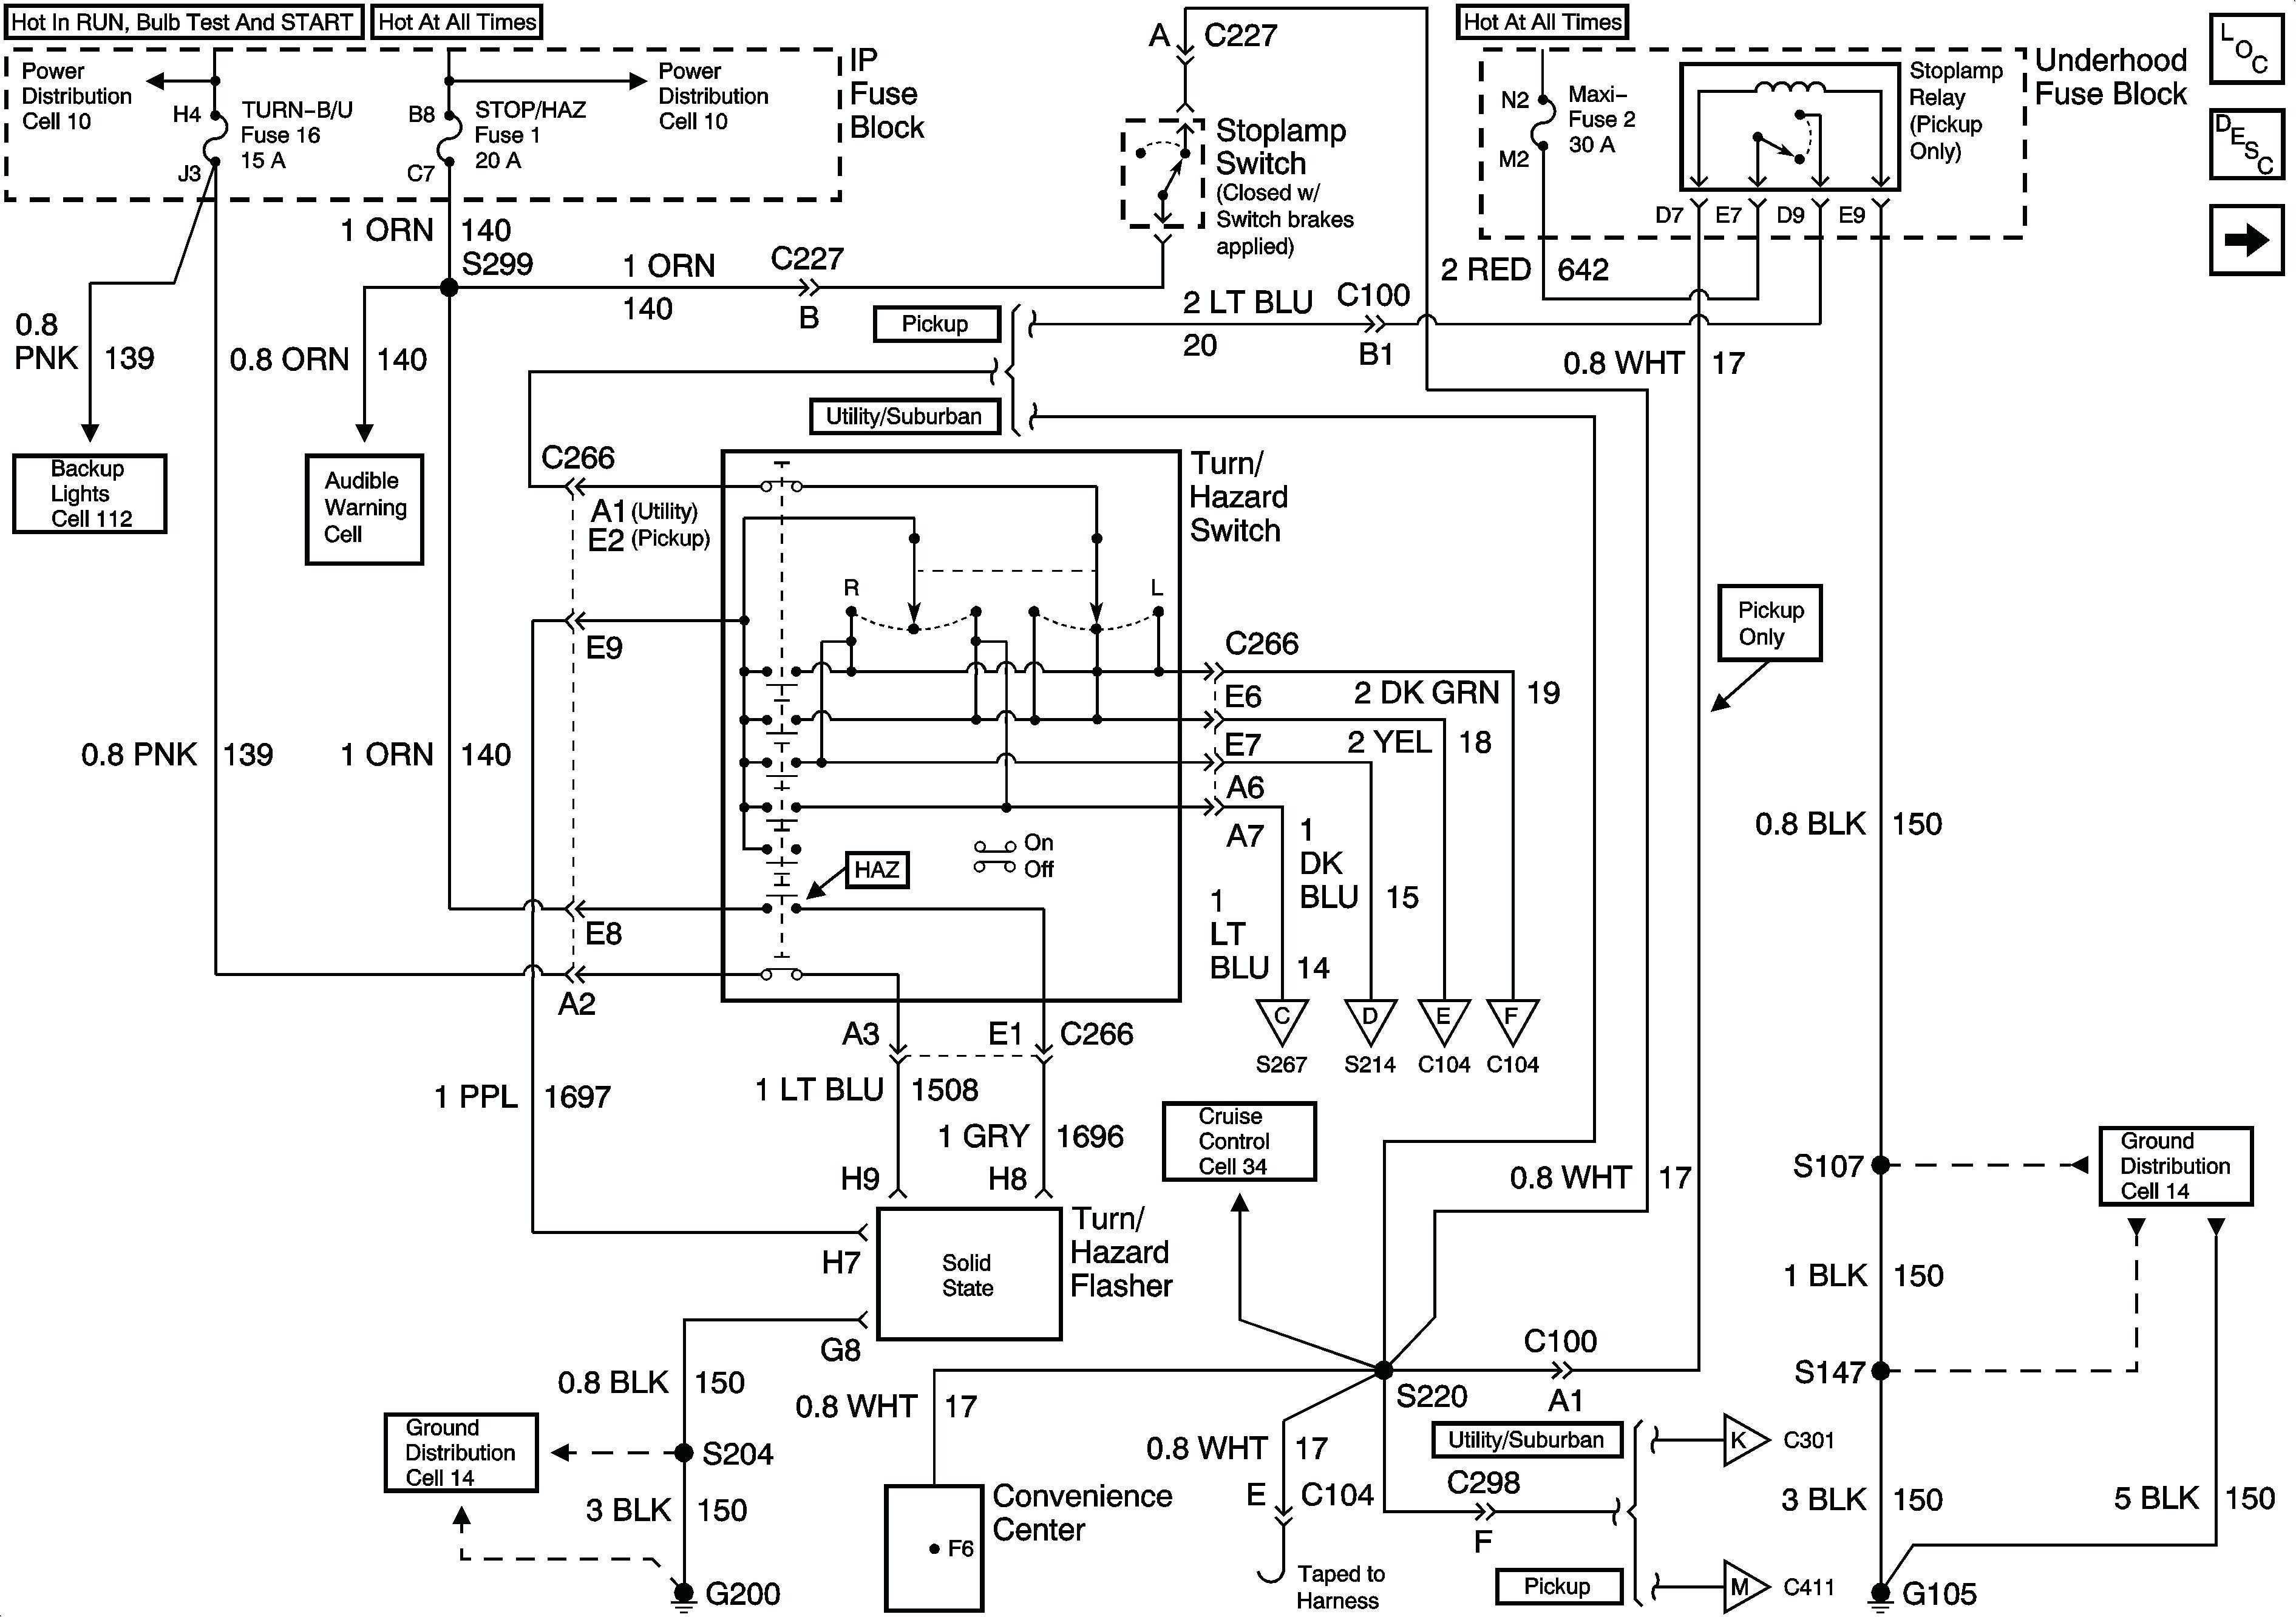 Infiniti Qx4 Engine Diagram 2001 Infiniti Qx4 Headlight Wiring Diagram Experts Wiring Diagram • Of Infiniti Qx4 Engine Diagram